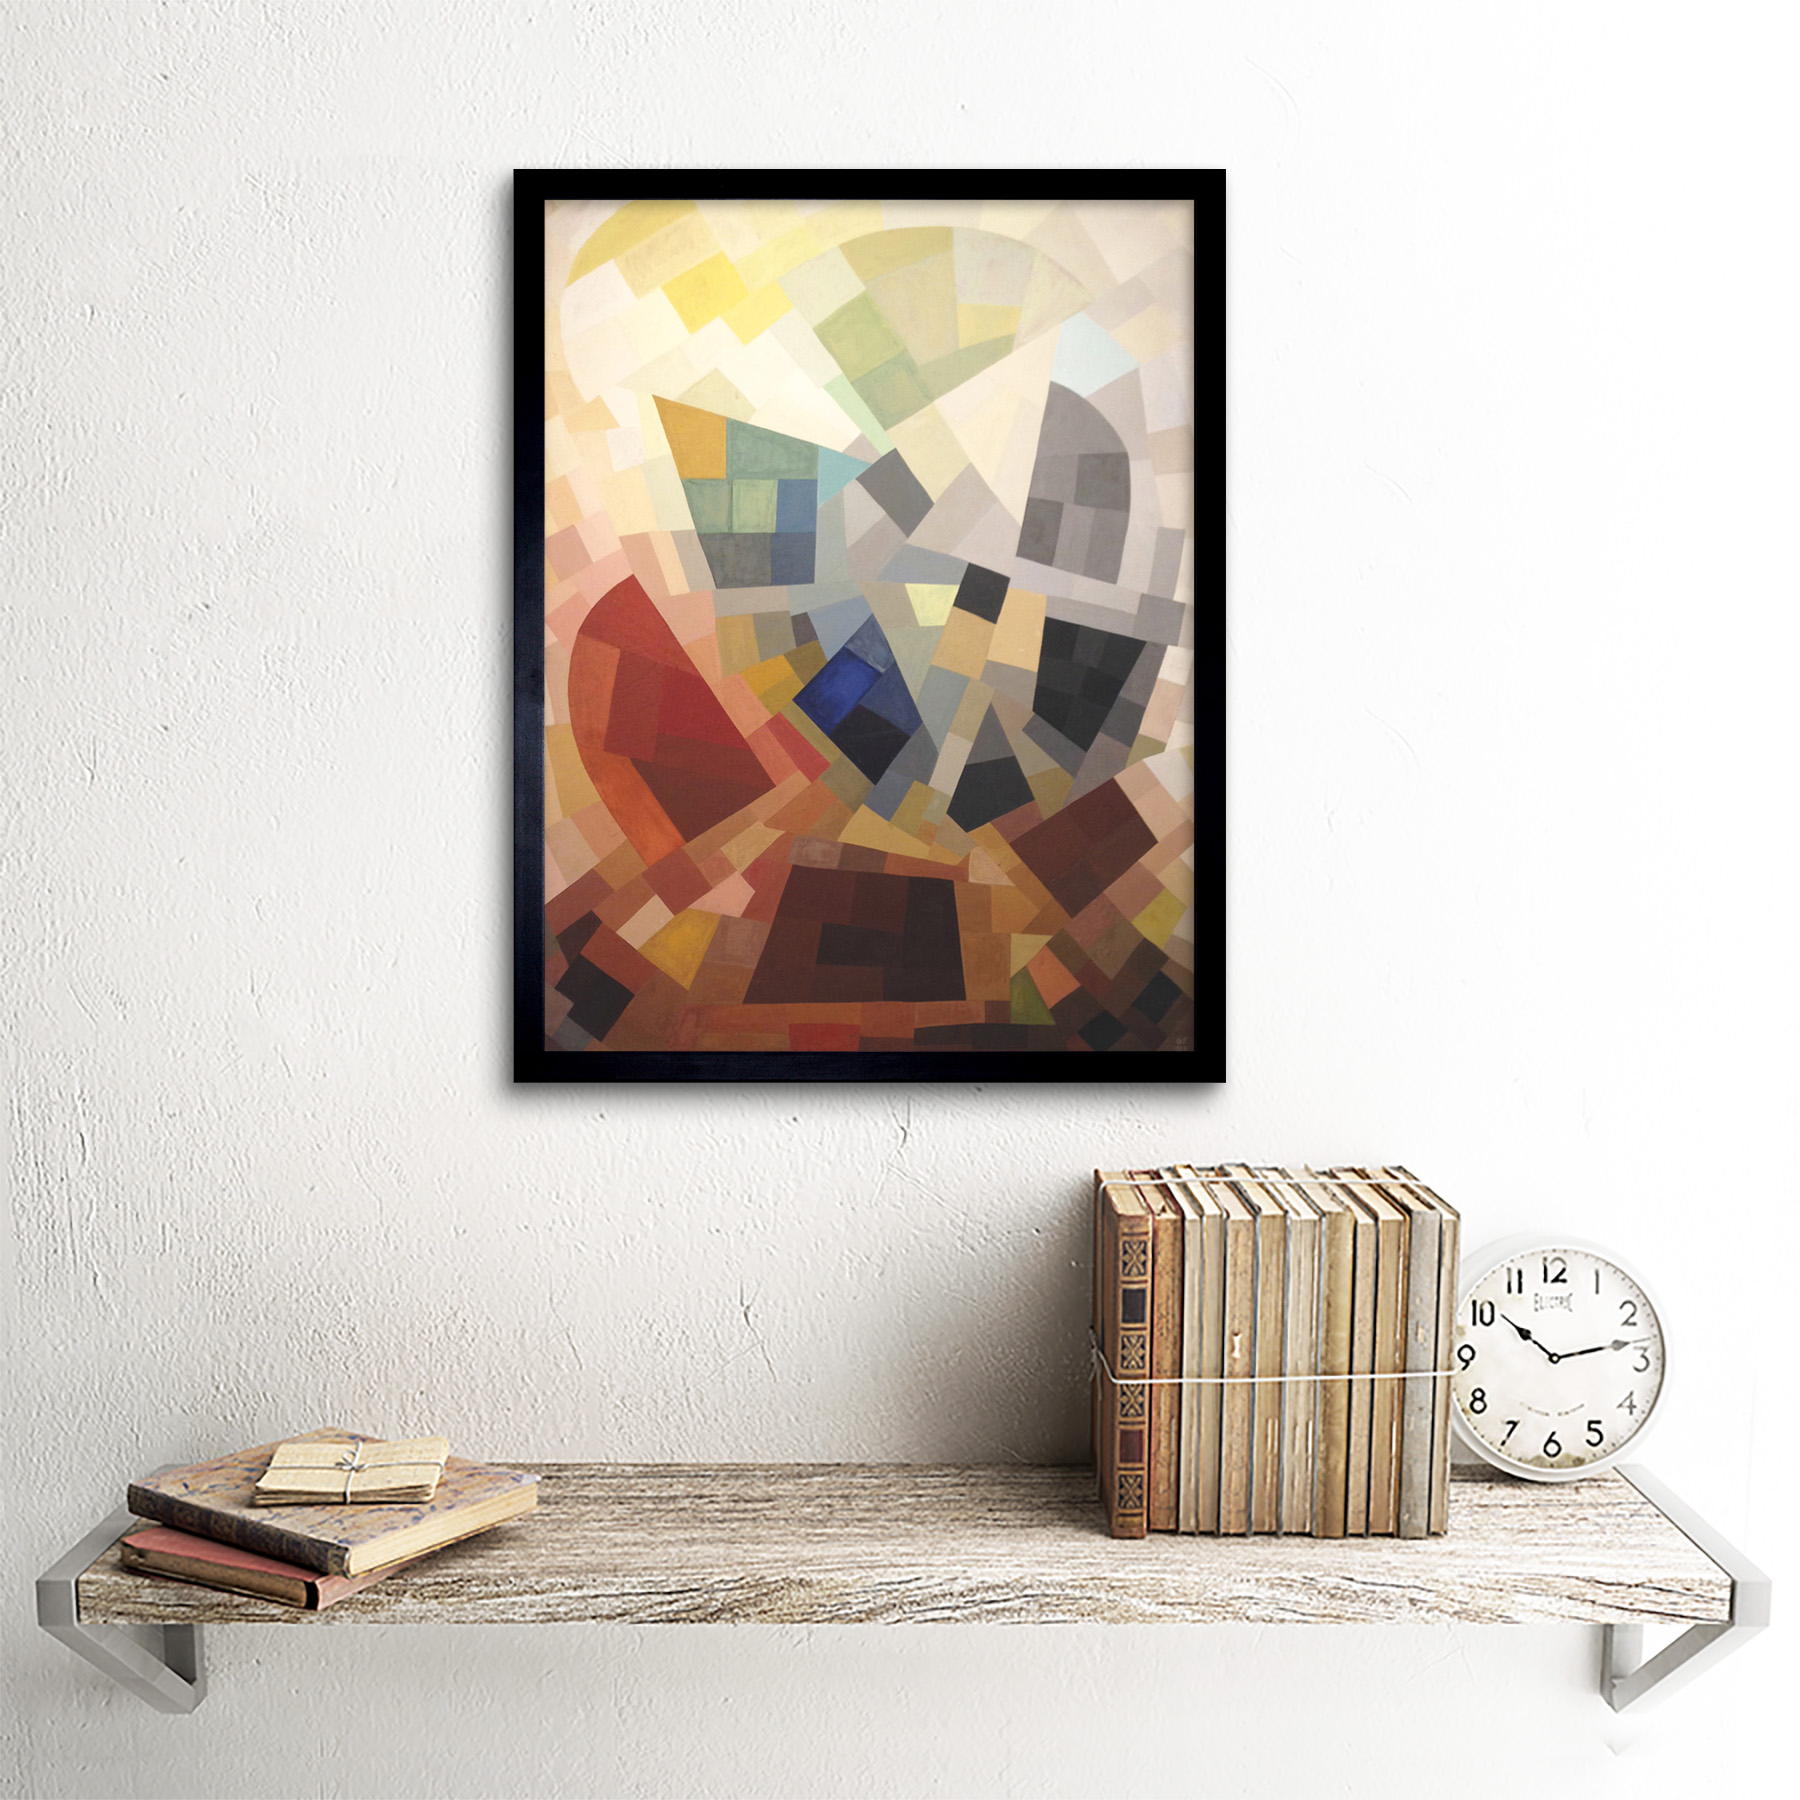 Freundlich-Abstract-Composition-Painting-Art-Print-Framed-12x16 thumbnail 3